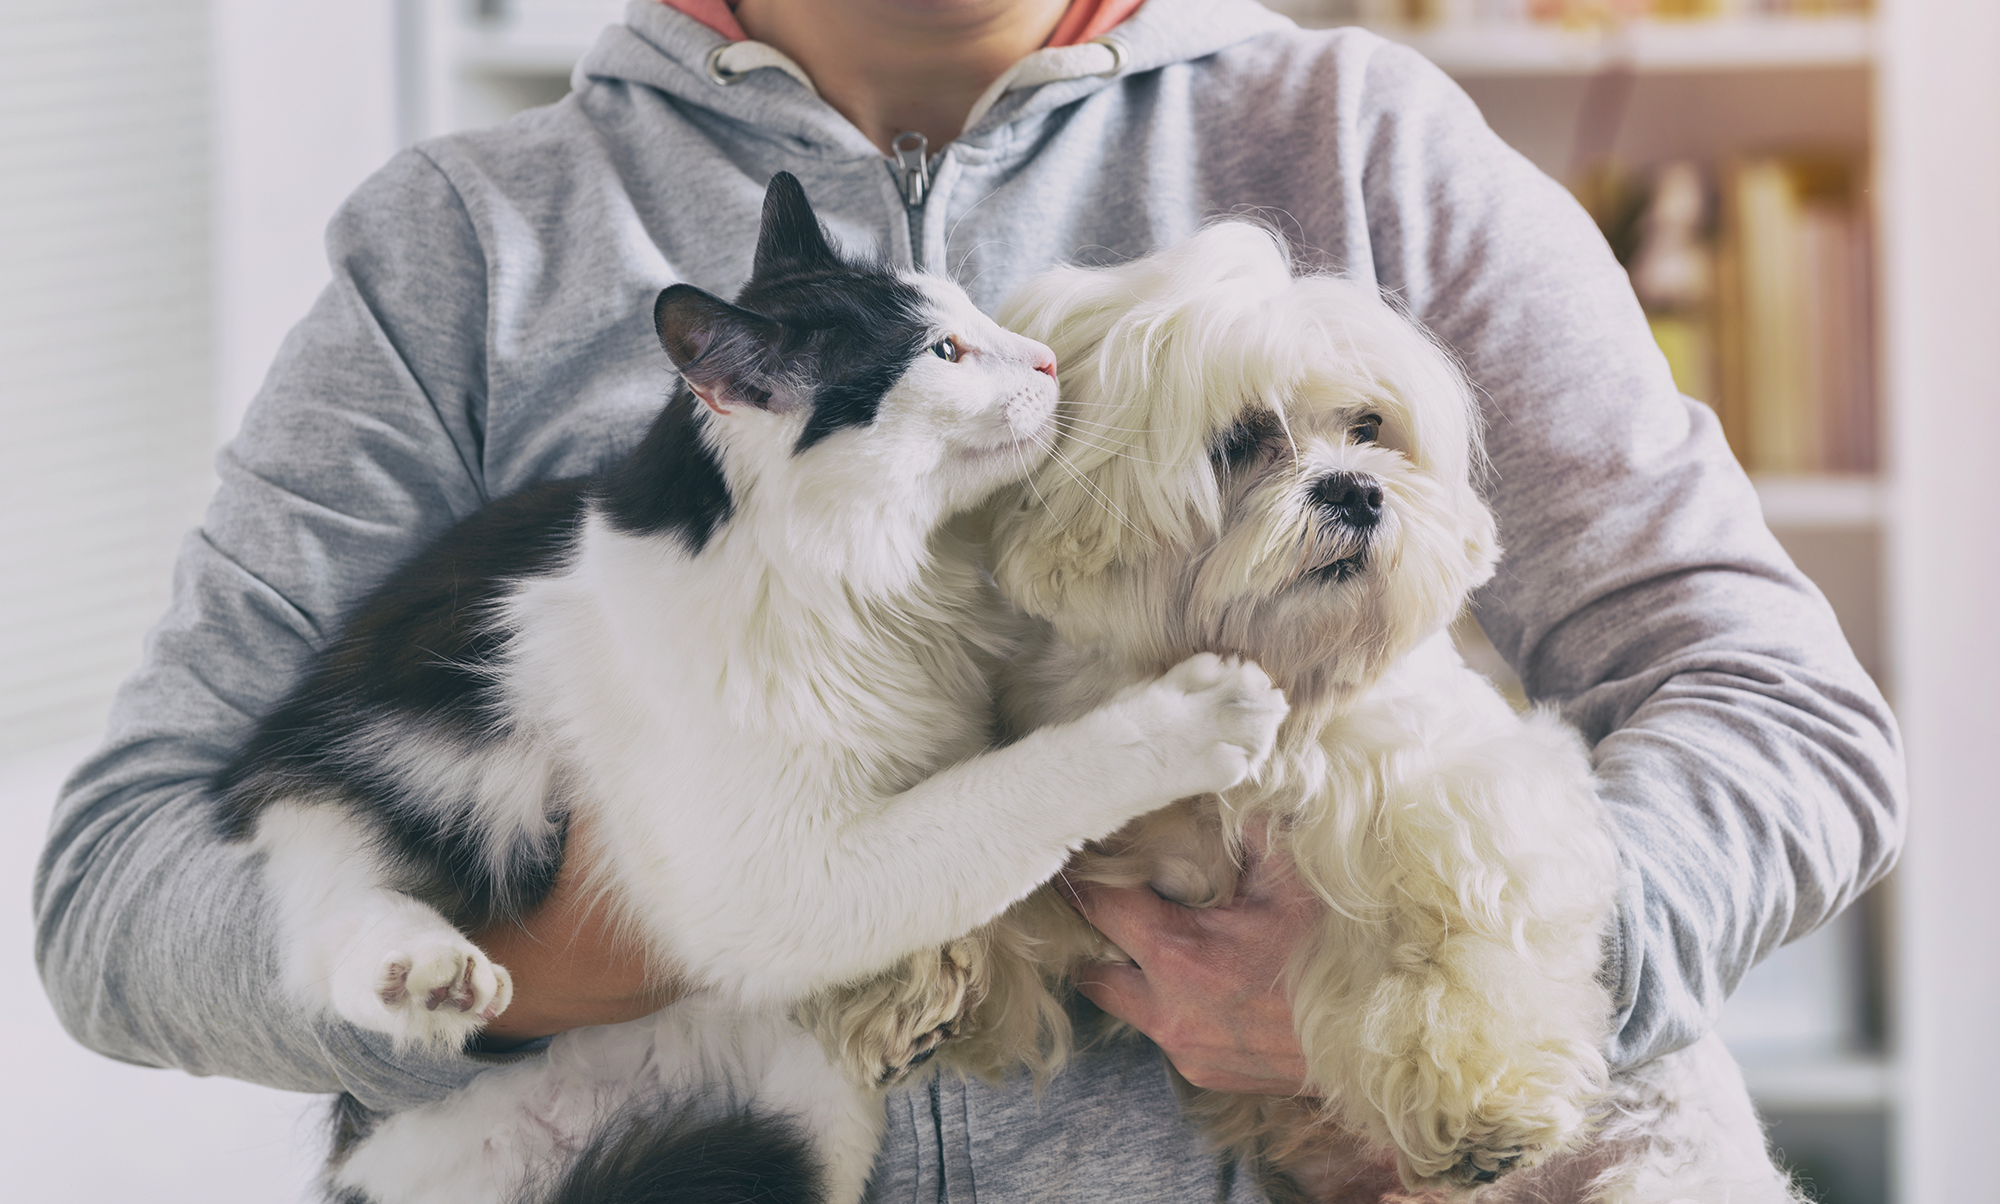 pet owner holding cat and dog